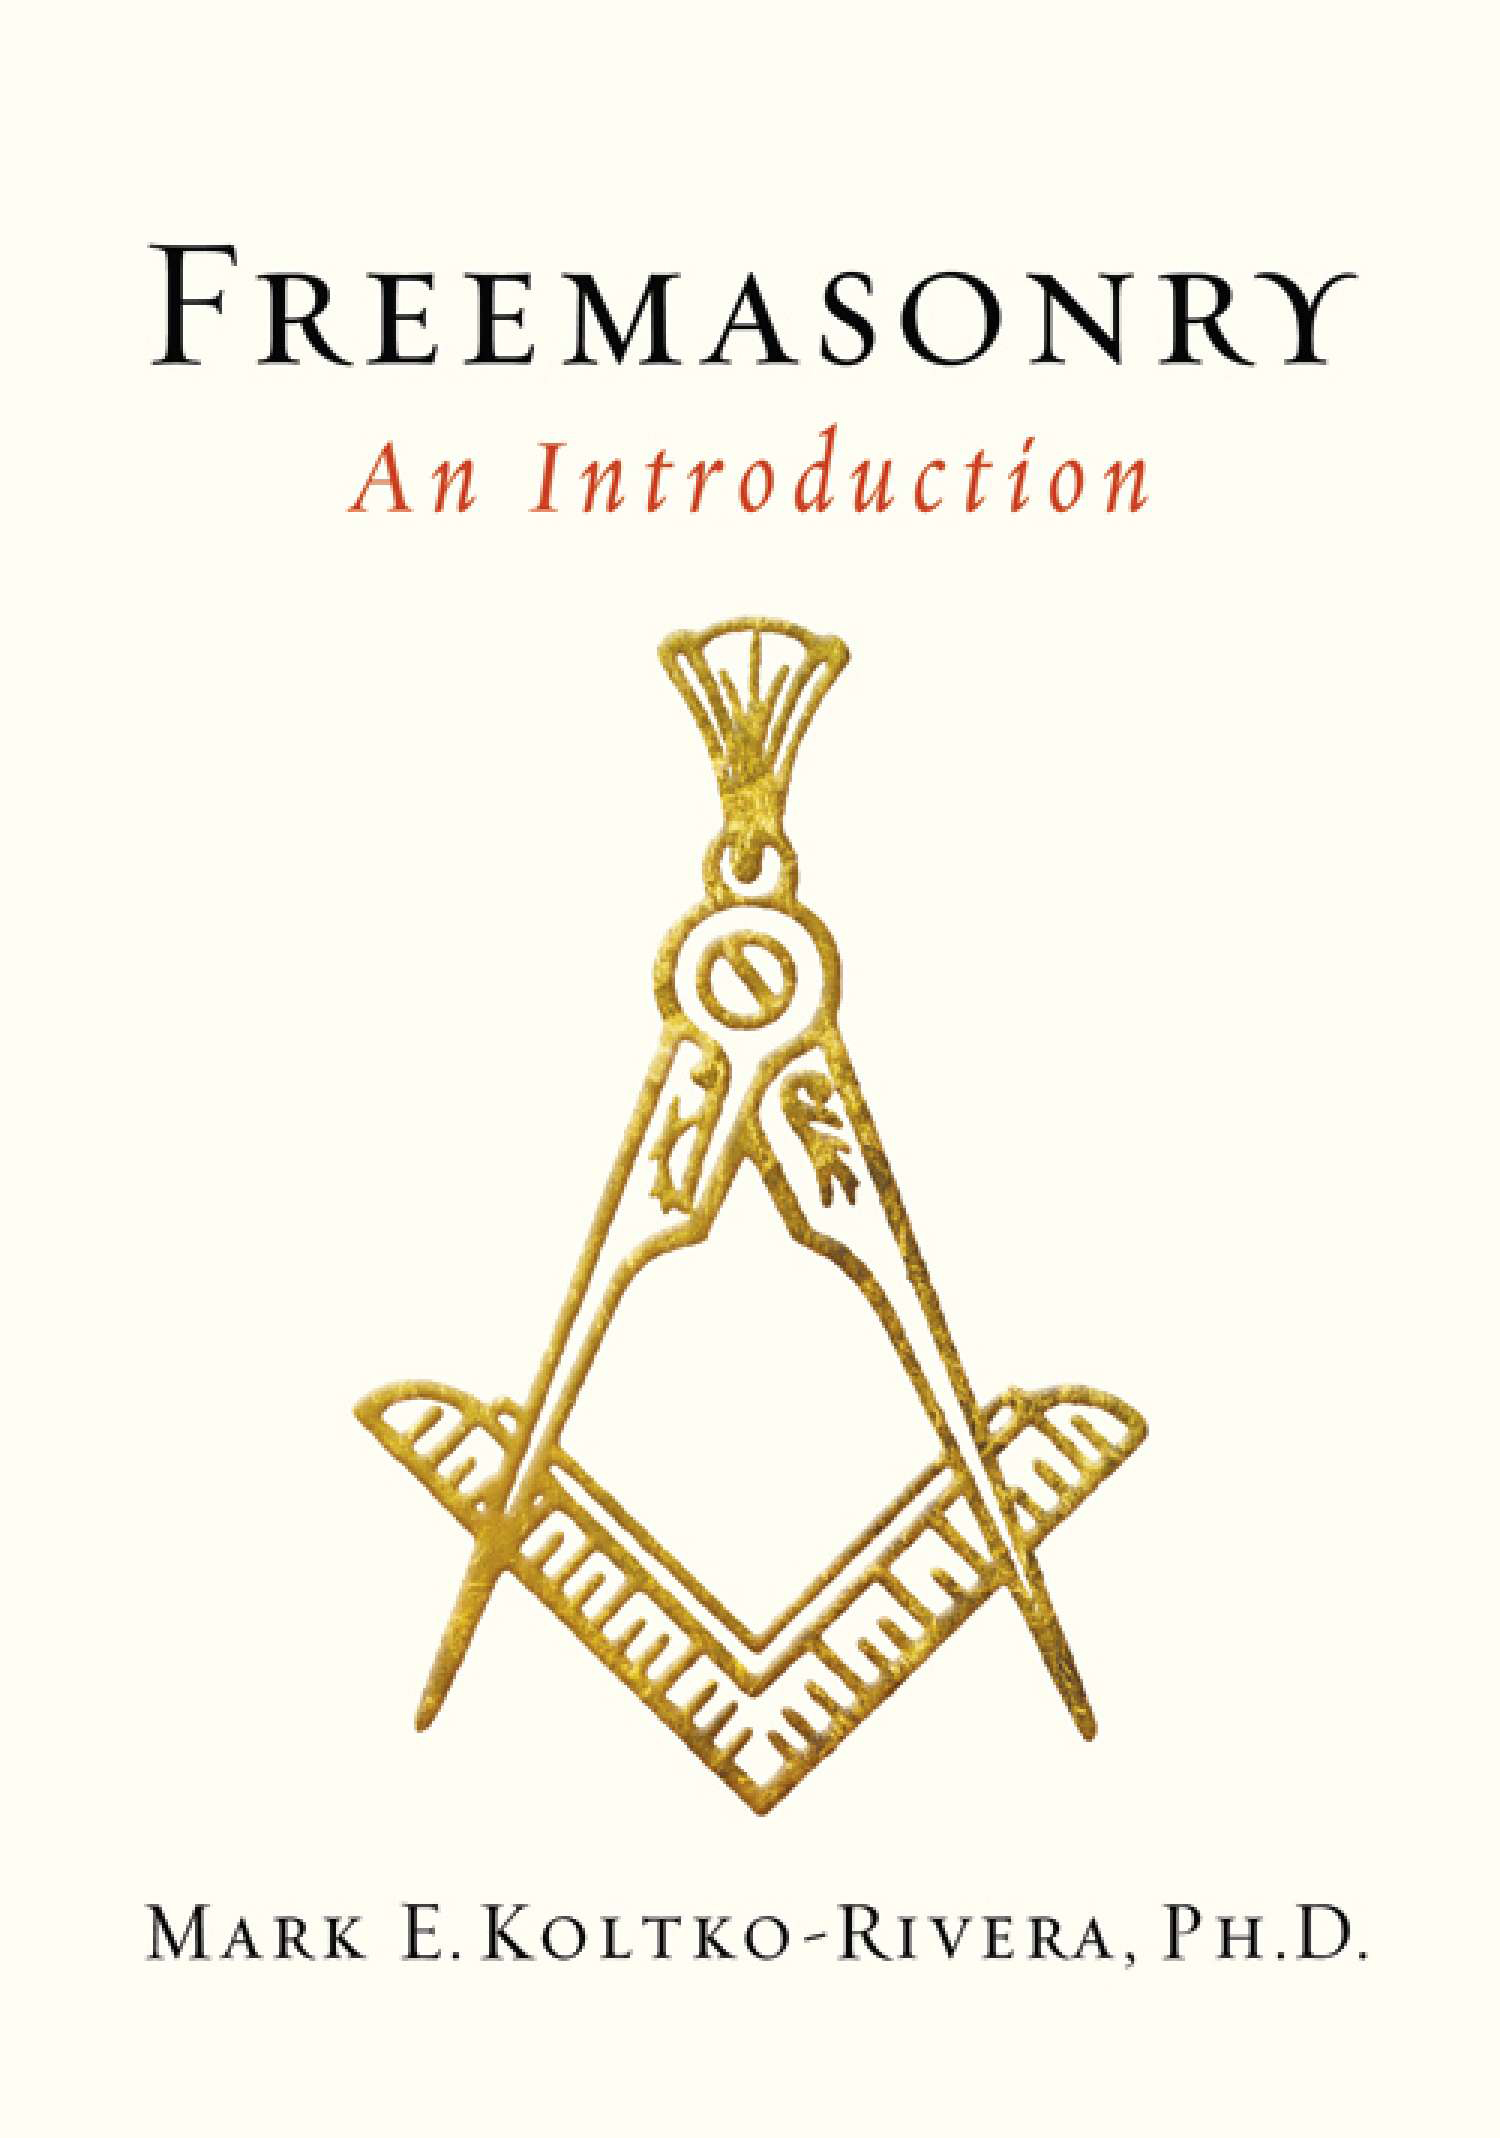 Freemasonry: An Introduction